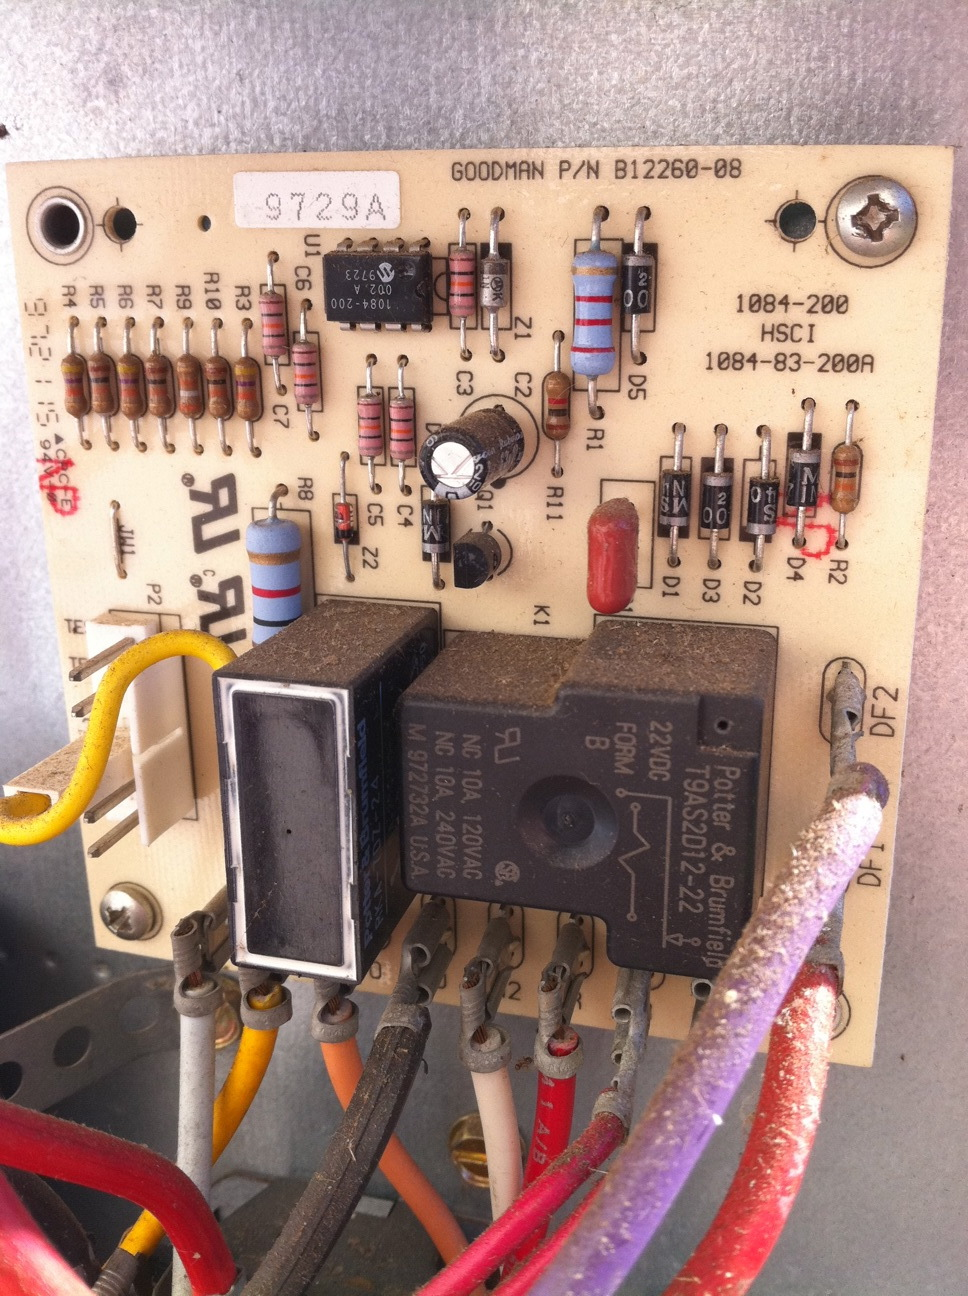 Wiring Diagram Heat Pump Defrost Board : I have a heat pump that is not working the air handler just